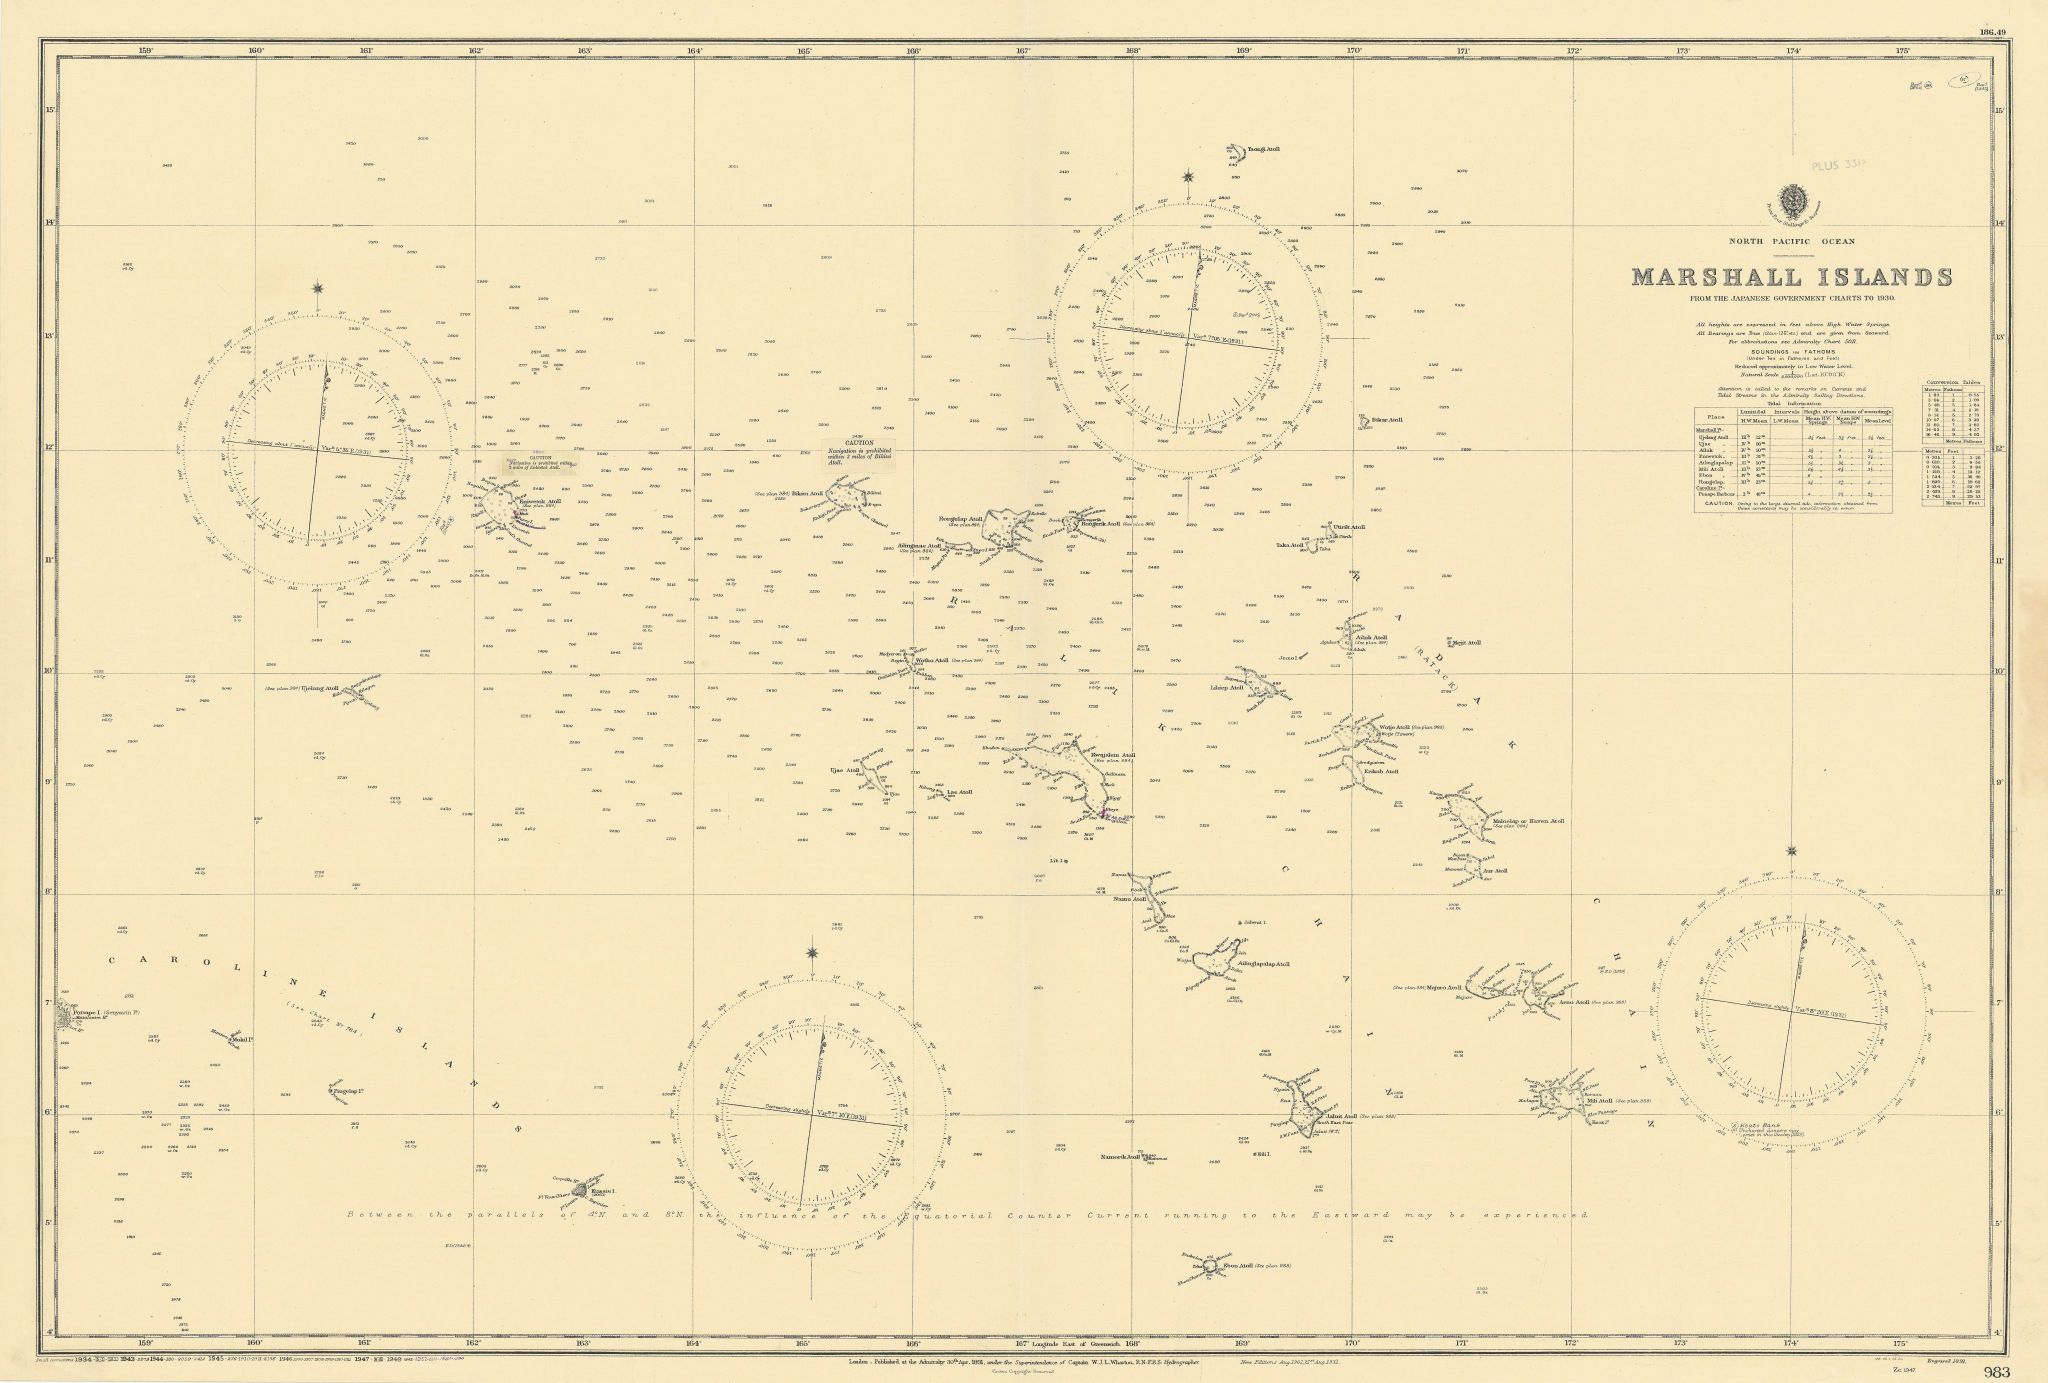 Marshall Islands North Pacific Ocean Micronesia ADMIRALTY chart 1891 (1953) map